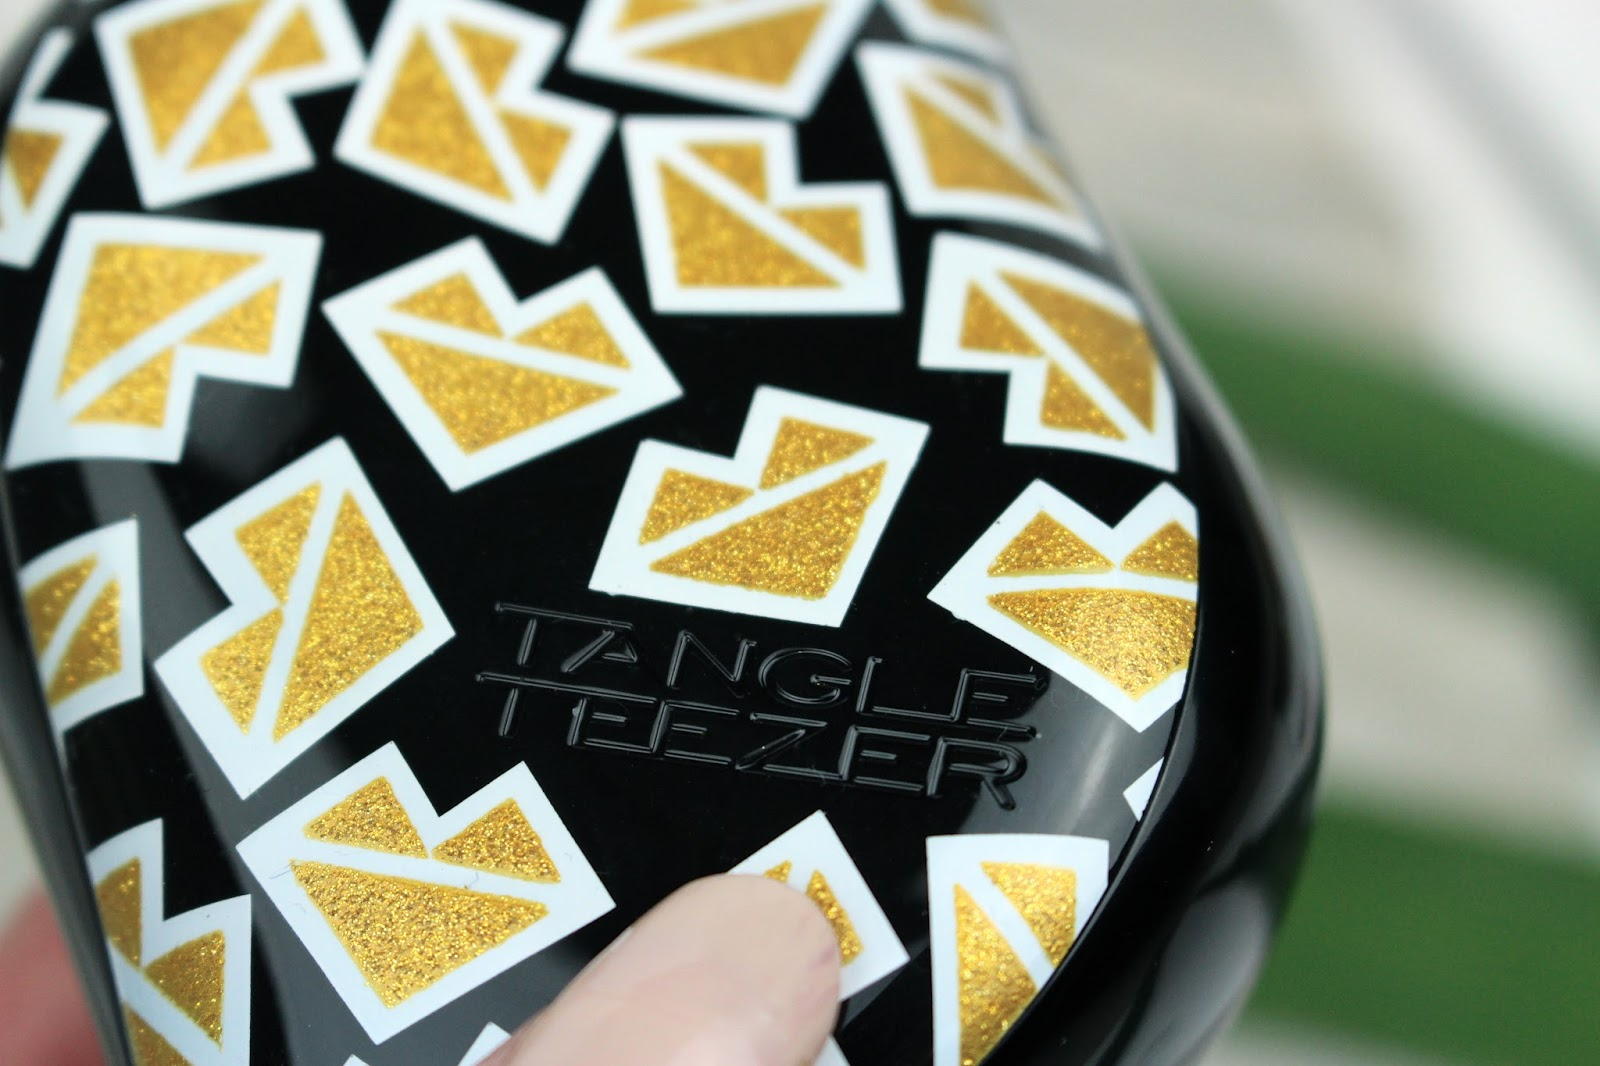 Tangle Teezer Markus Lupfer Compact Styler beauty blog review